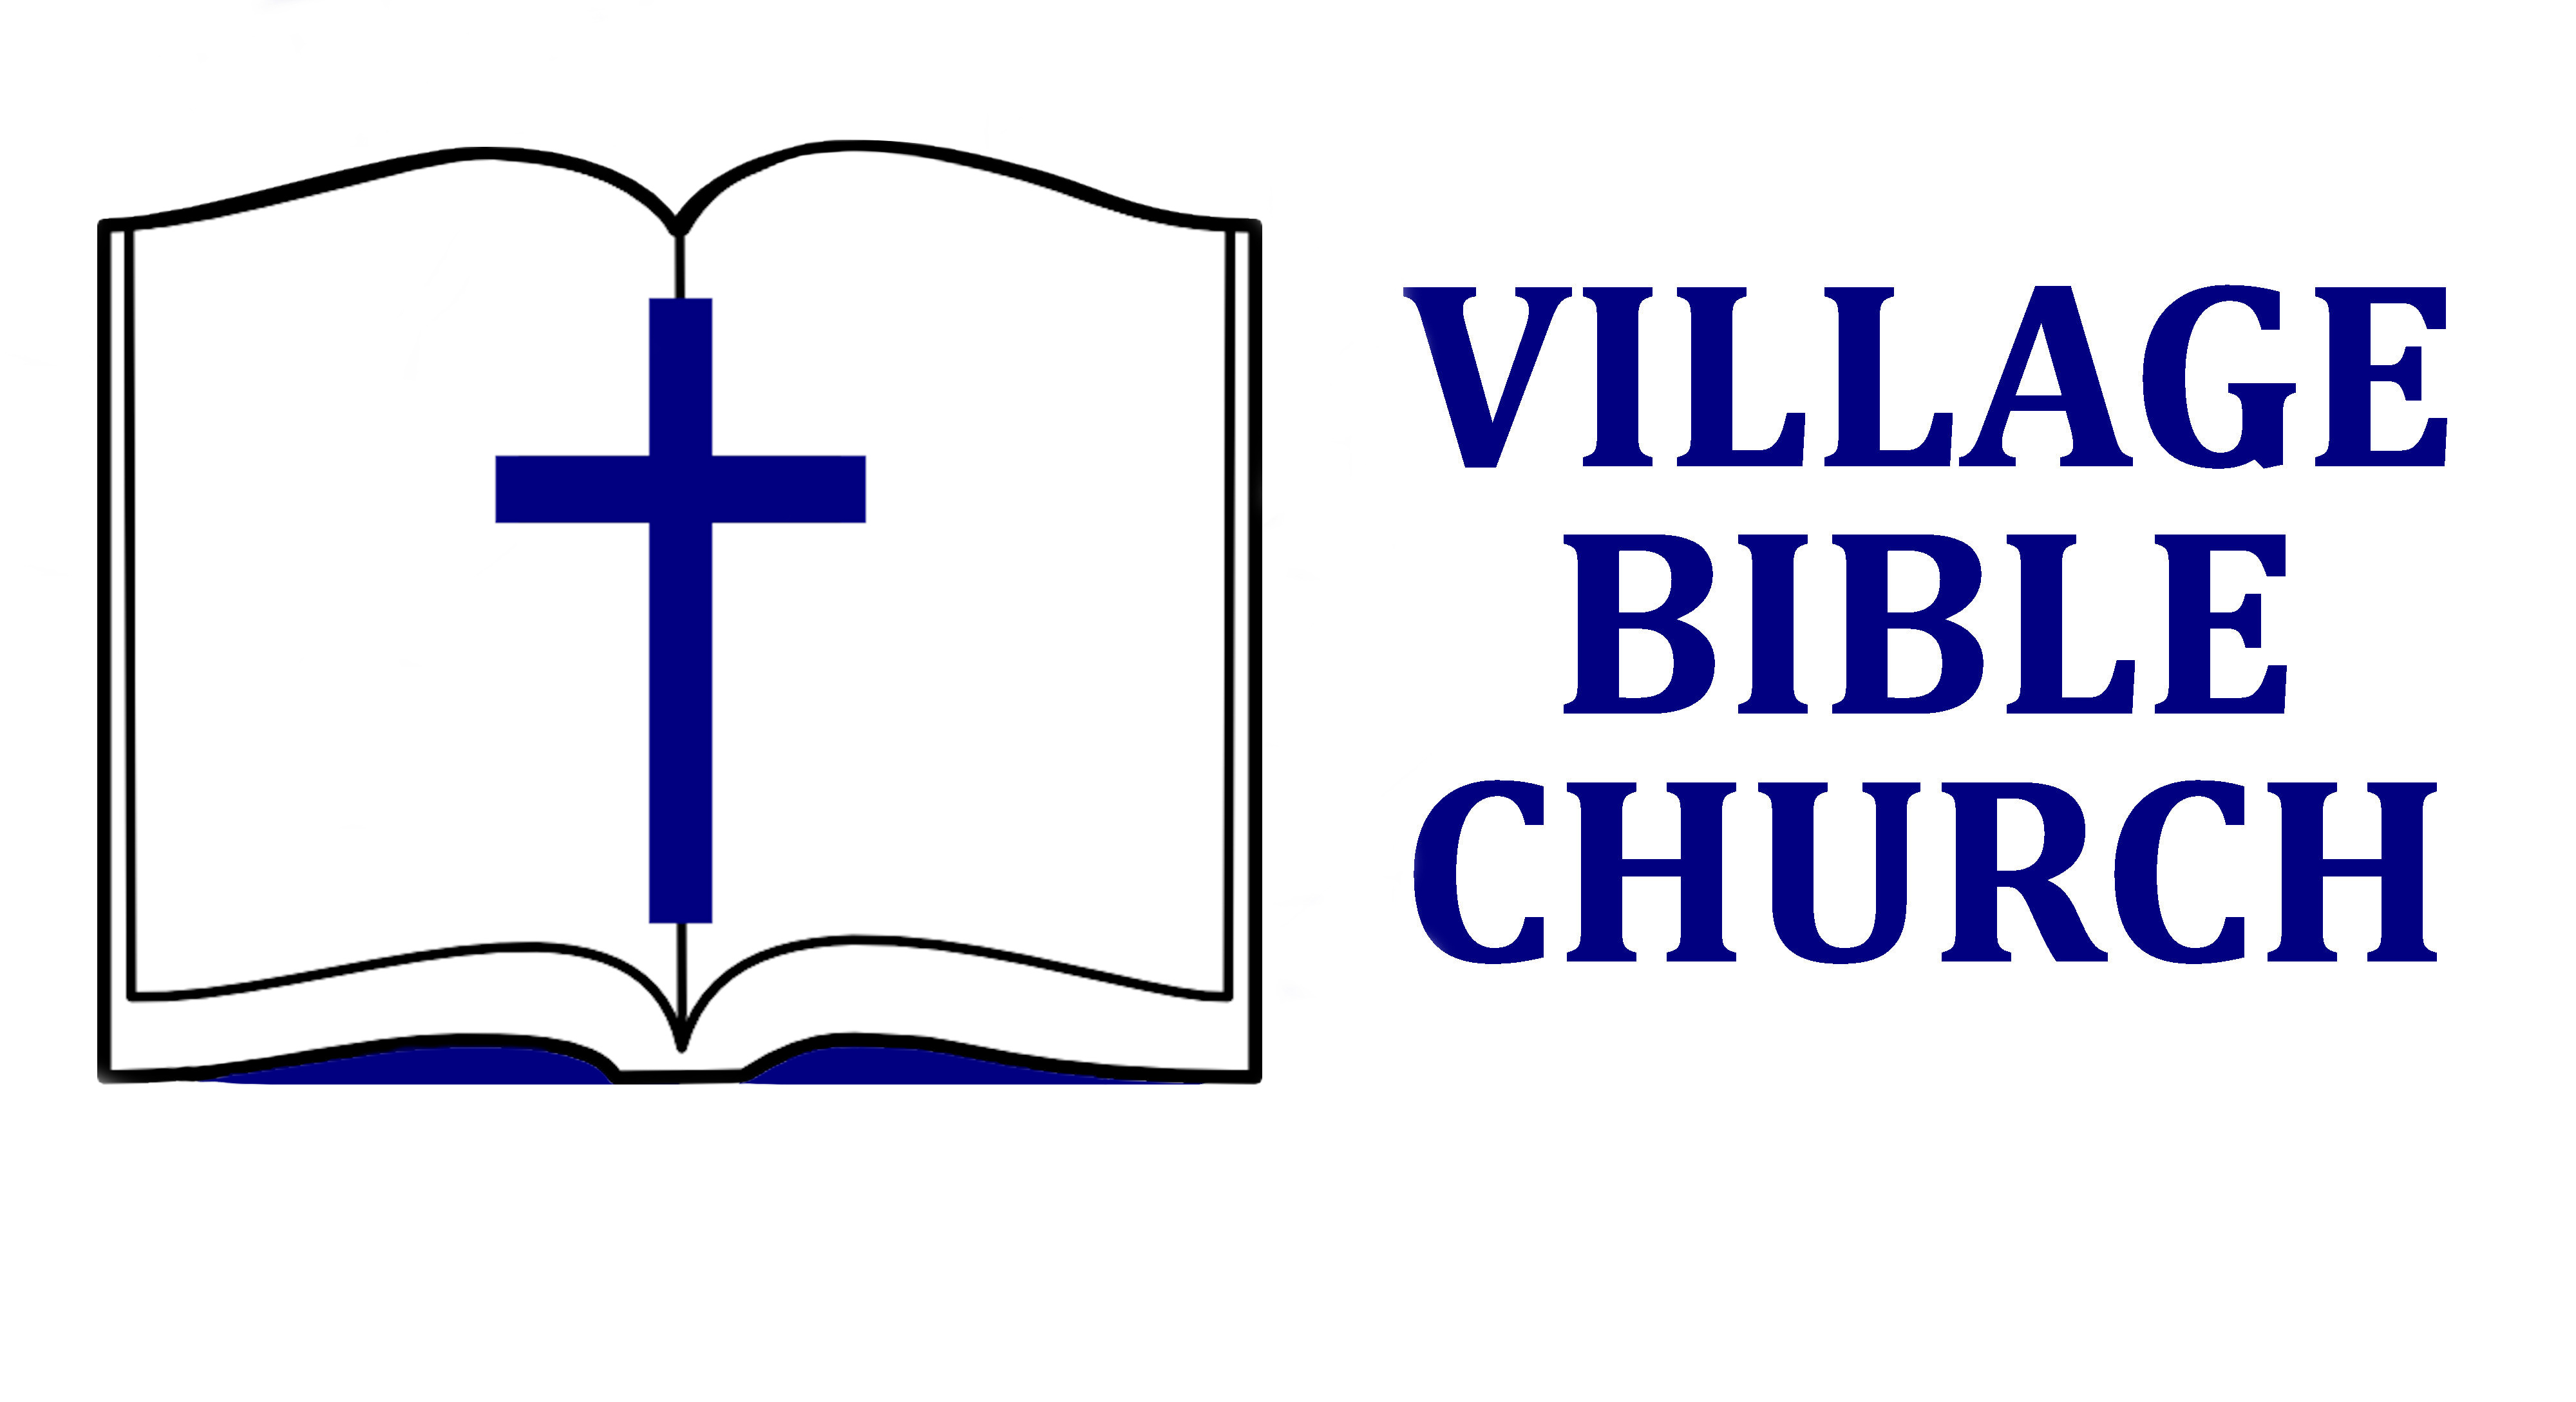 Village Bible Church | 100 Ponderosa Way Hot Springs Village, AR 71909 |